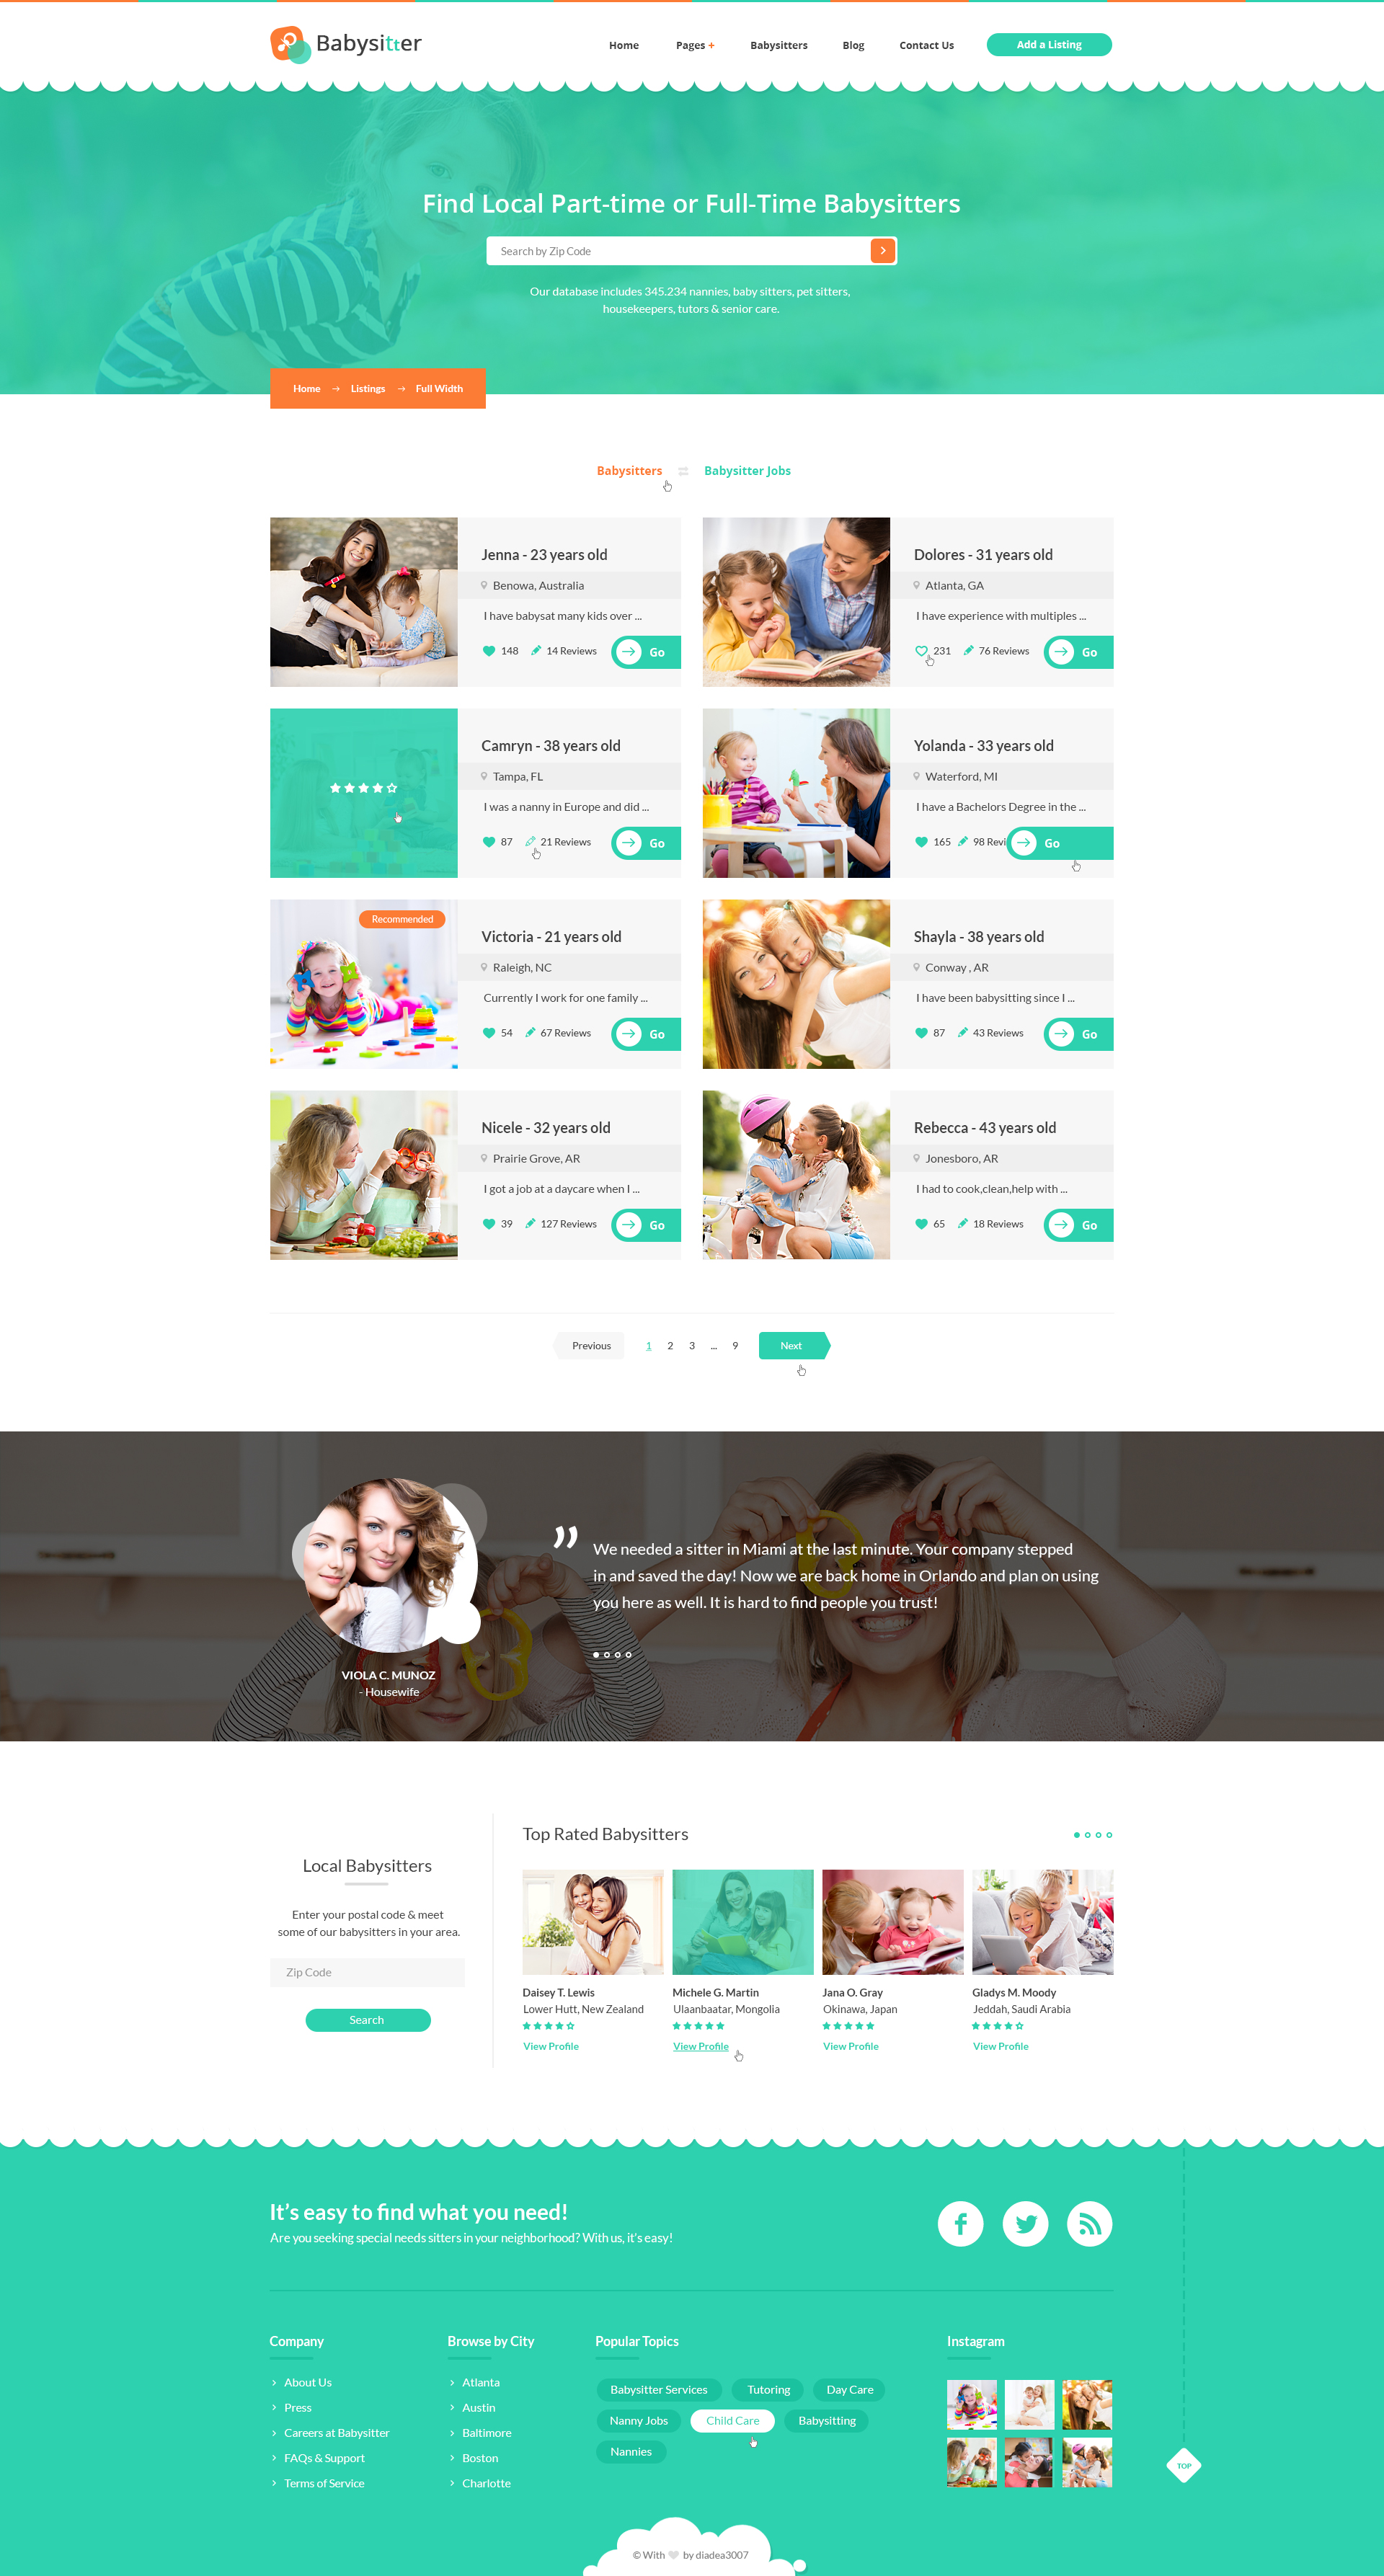 sample resume for babysitters resume templates sample resume for babysitters babysitter resume sample job interview career guide babysitter template baby information sheet